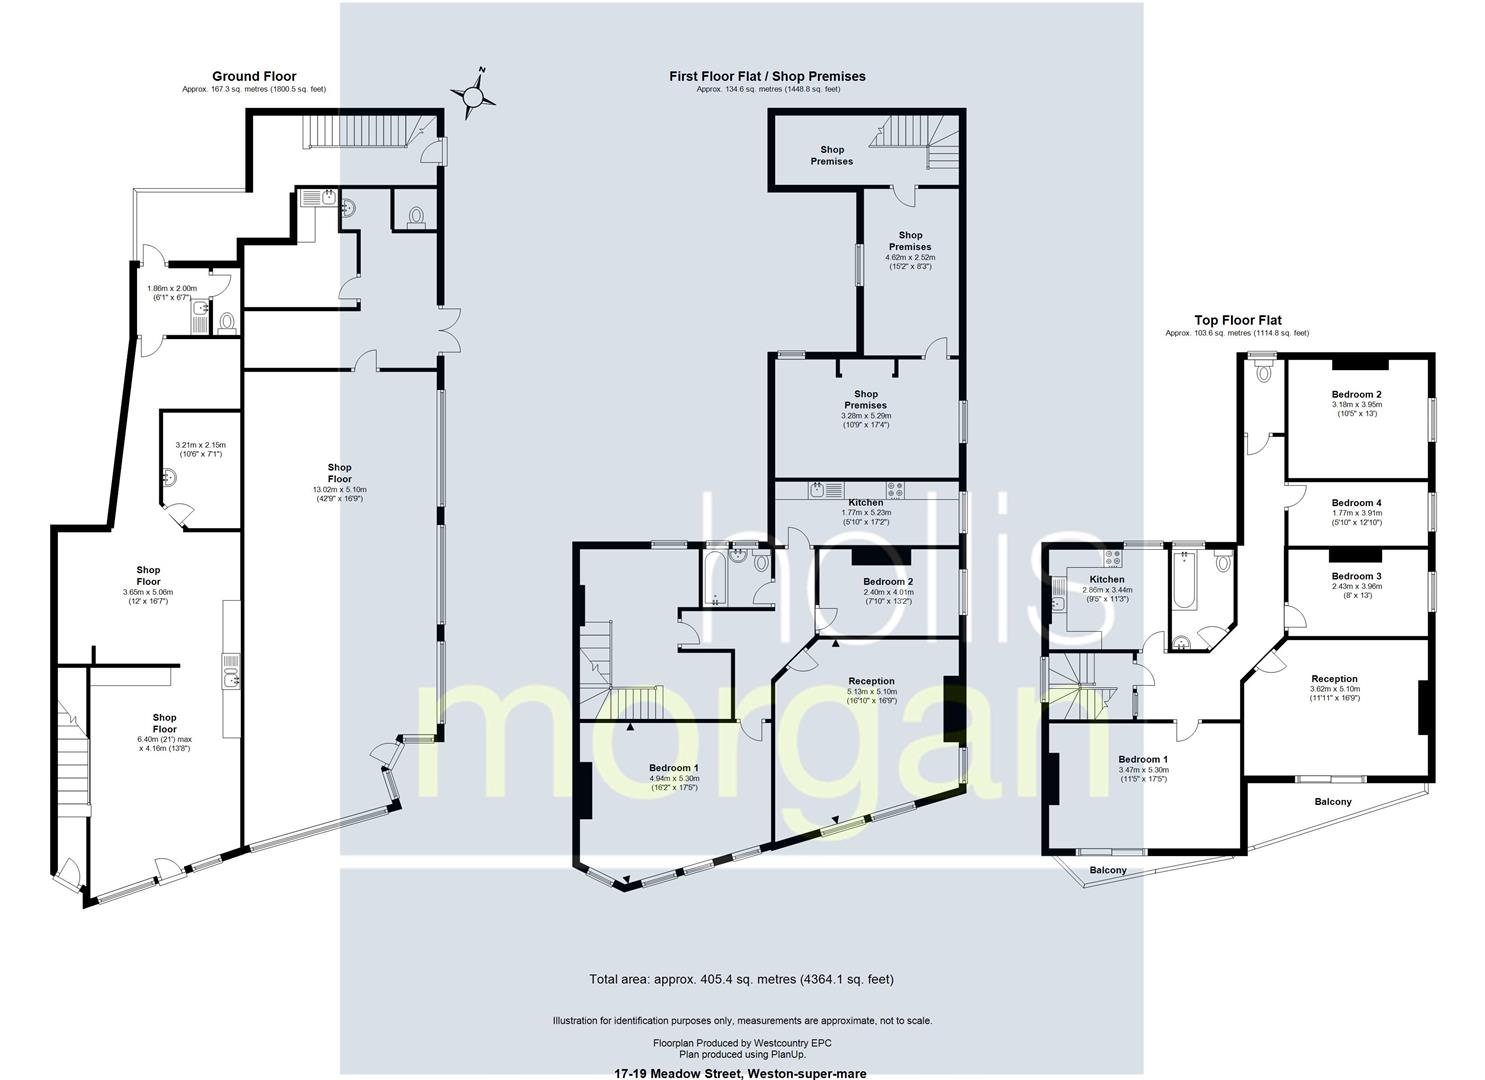 Floorplans For 2 FLAT / 2 SHOPS - CLOSE TO BEACH WSM